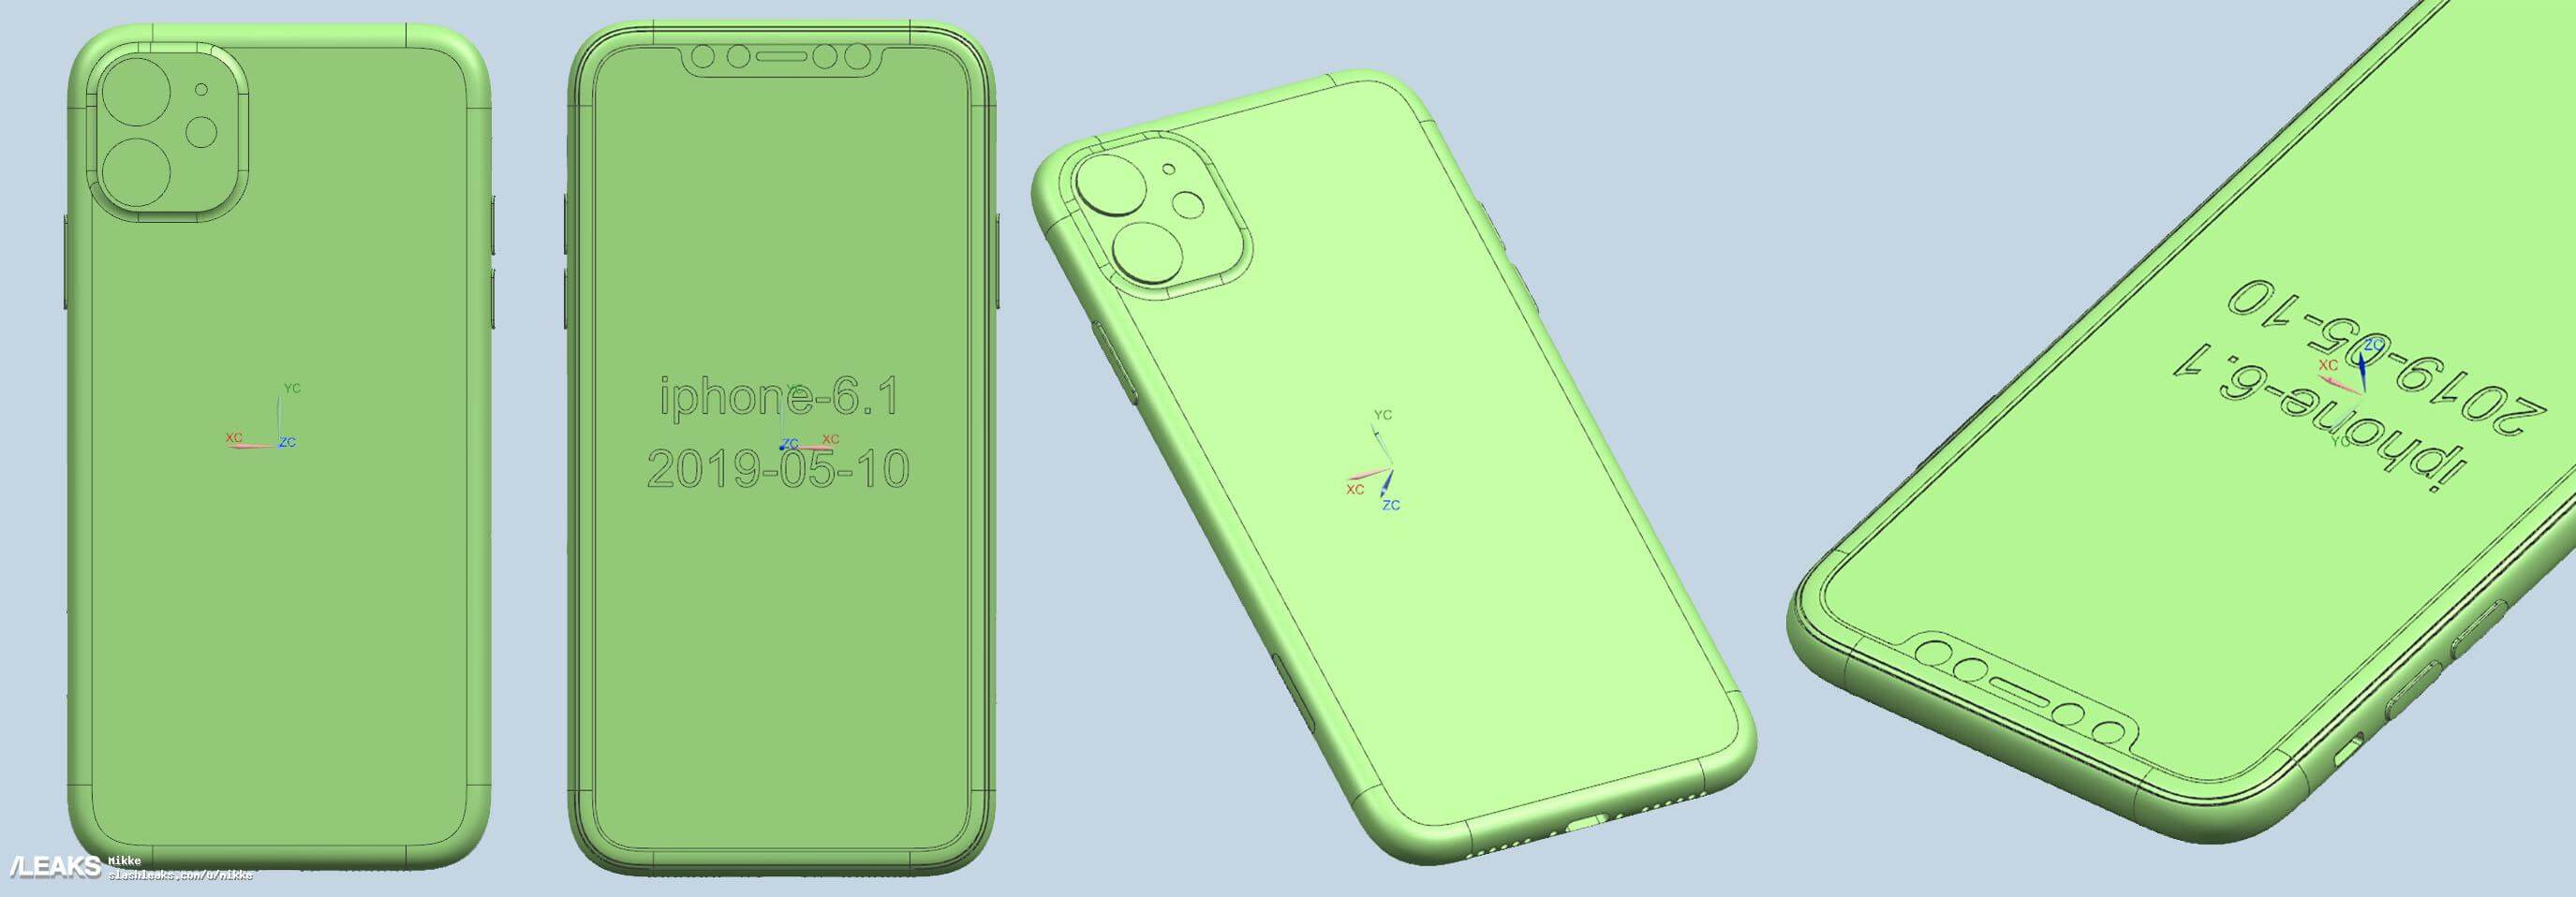 iPhone XI Renderings - Slashleaks